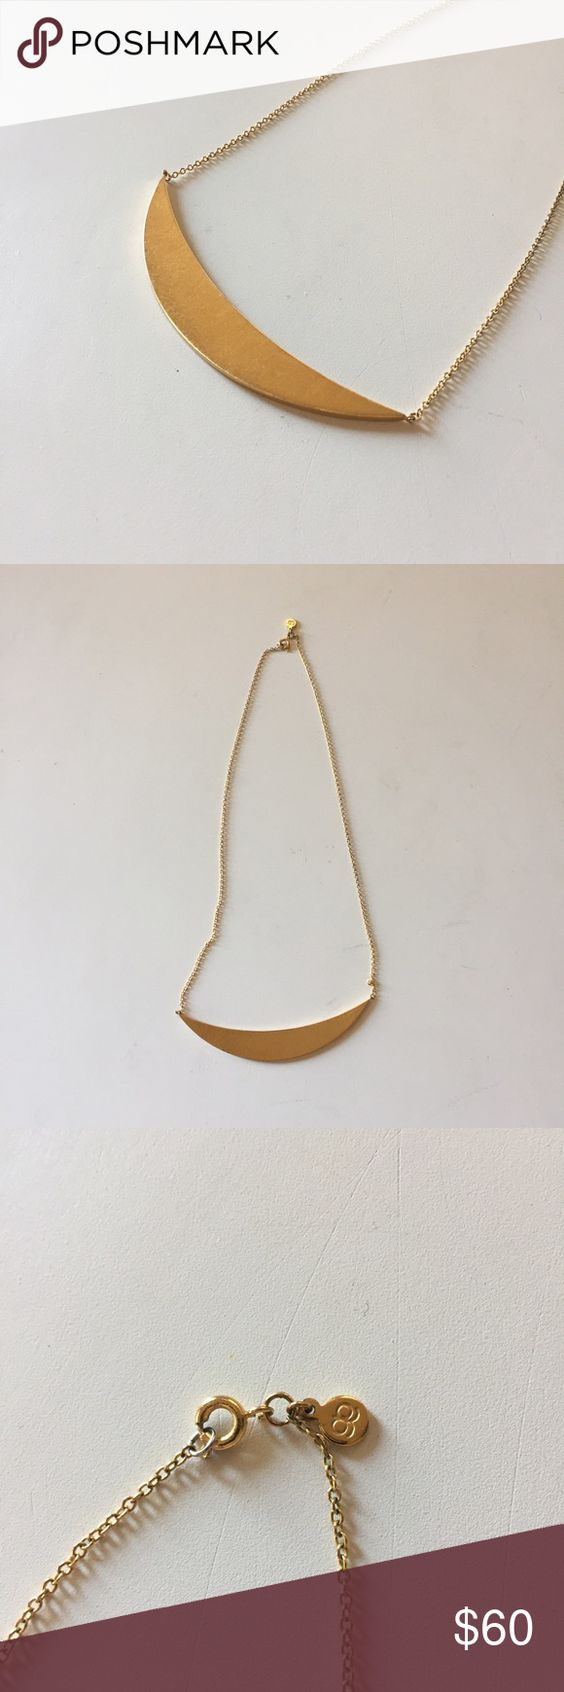 "GORJANA Crescent Plate Necklace The perfect gold accent piece. Matte 18k gold plated. 20"". Plate is 3.5"" across and 0.5"" tall. Spring ring closure. Like new condition! Gorjana Jewelry Necklaces"